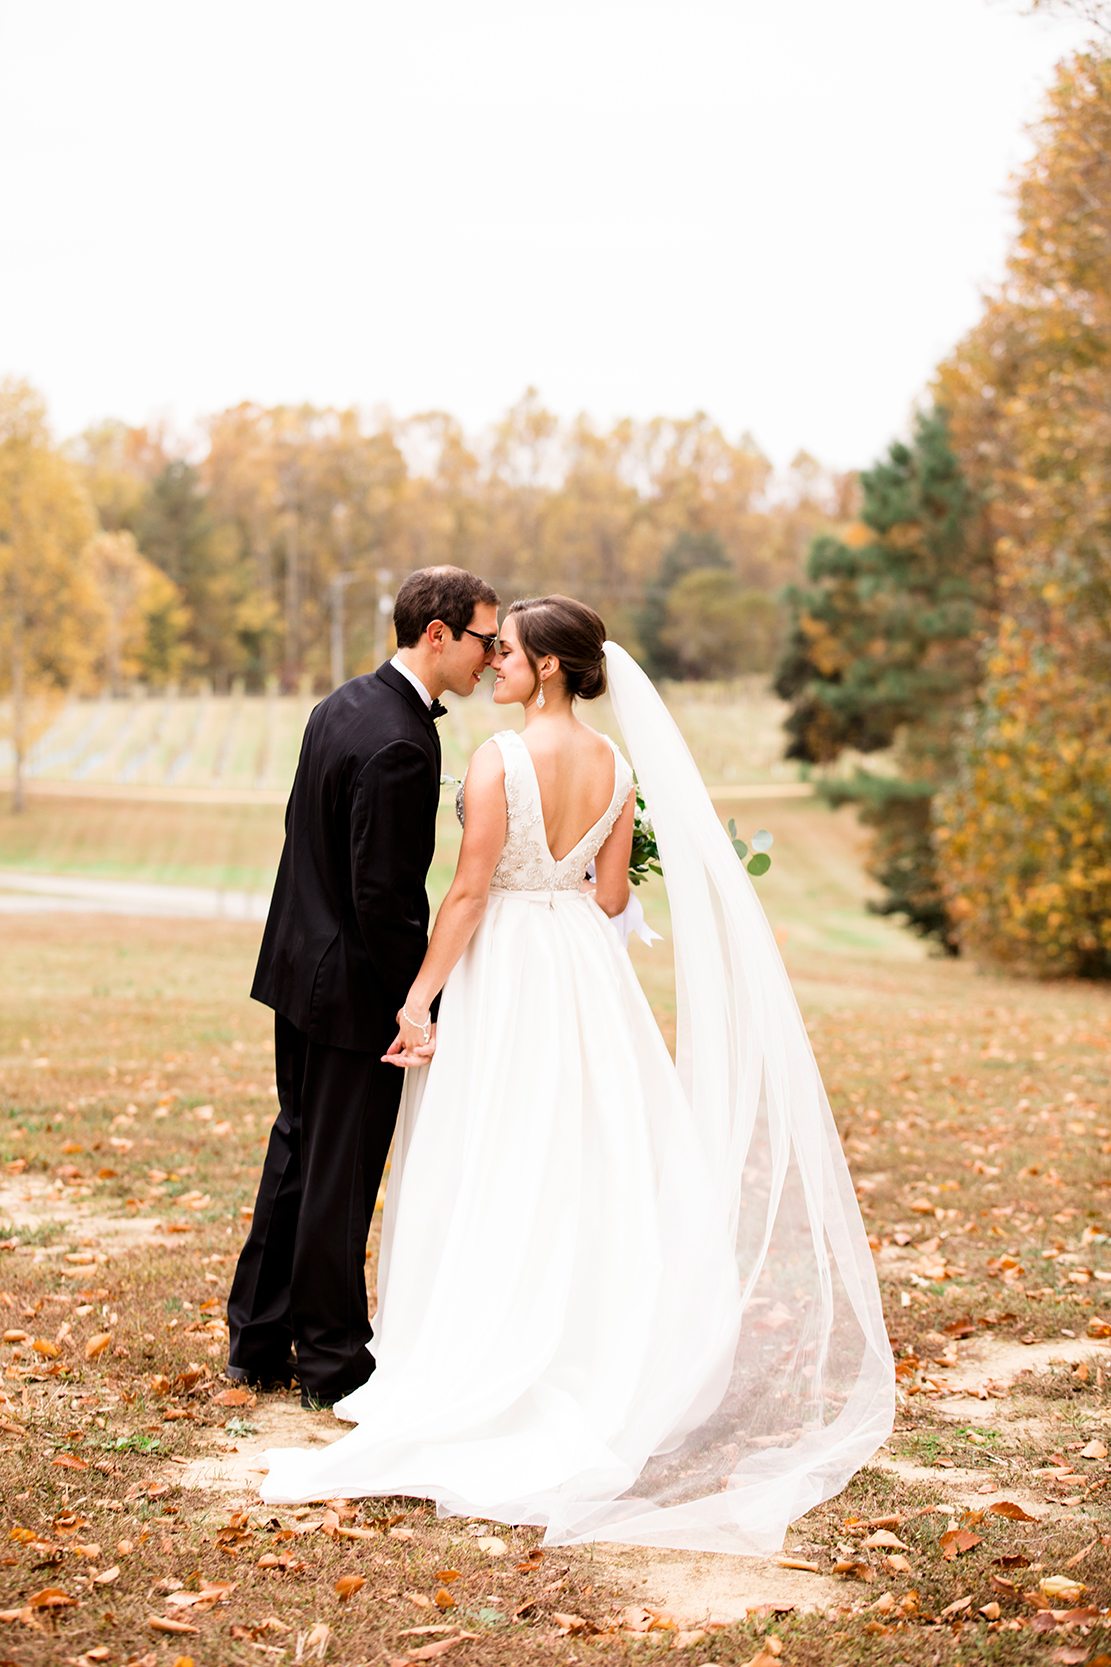 Wedding Preview  Andy  Claire - Image Property of www.j-dphoto.com